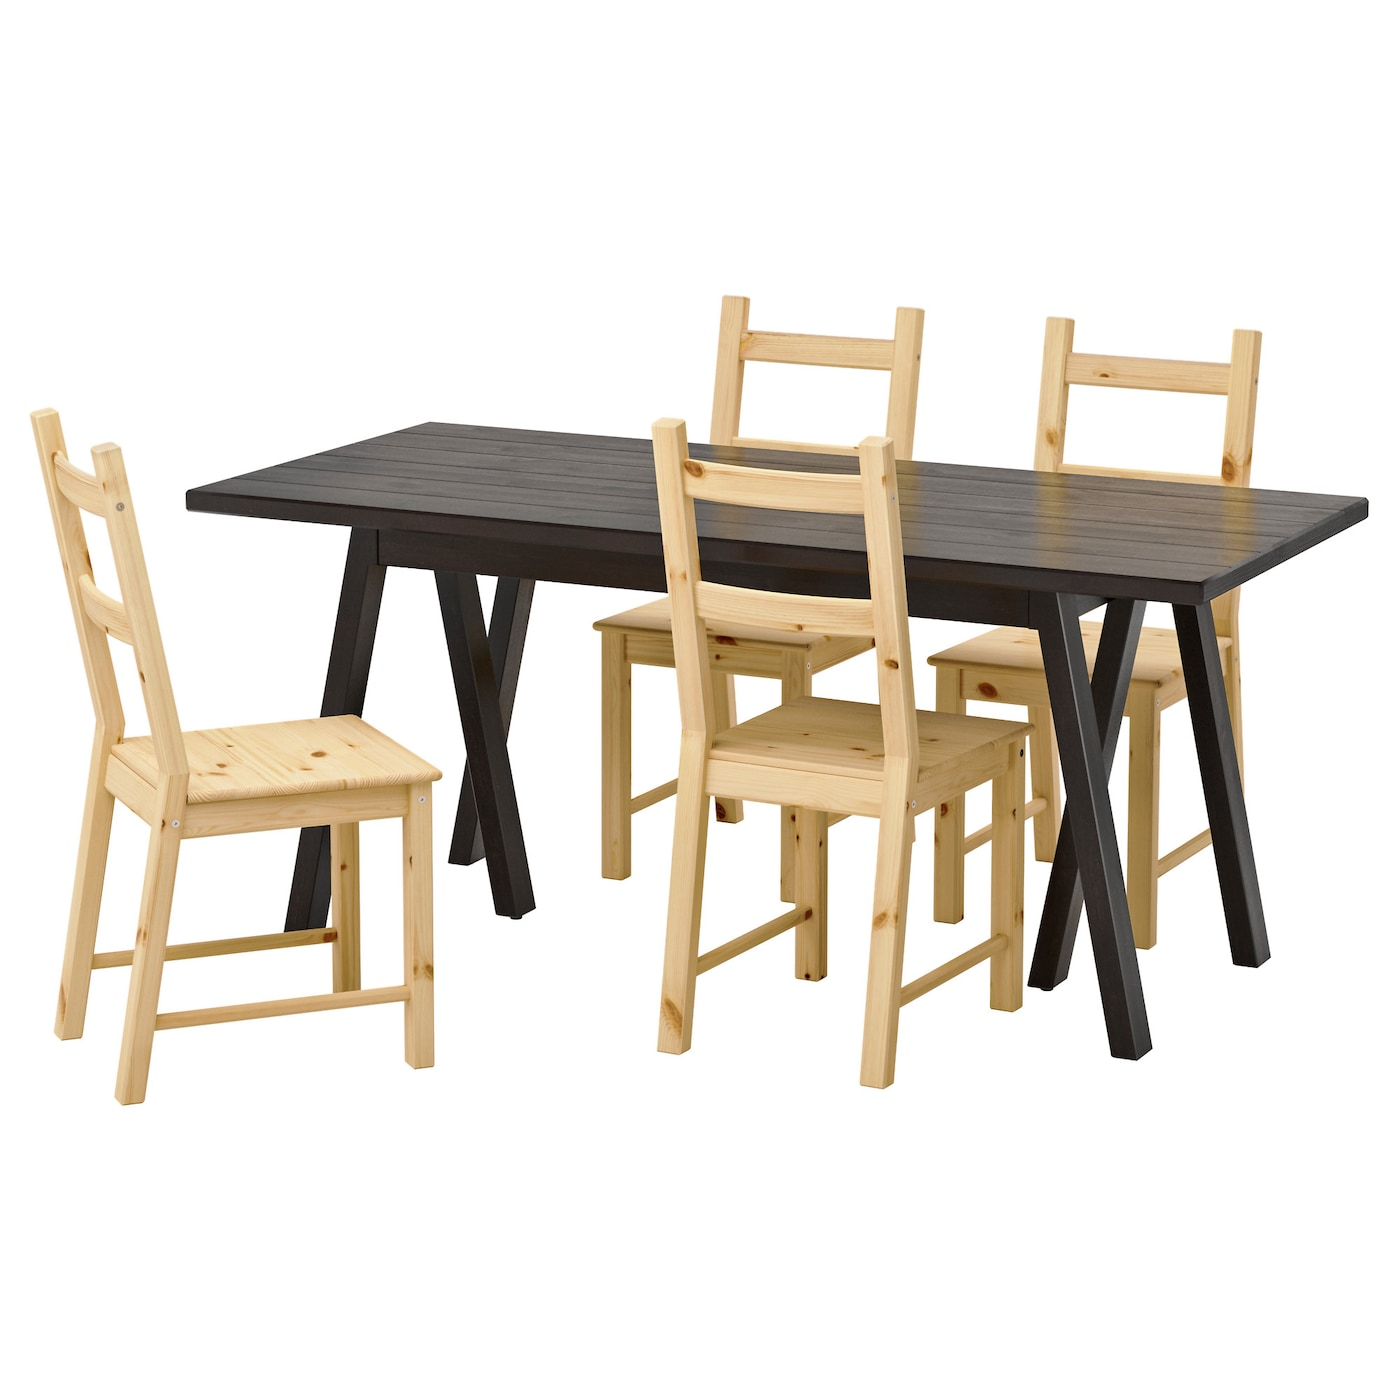 Ivar ryggestad grebbestad table and 4 chairs black pine for Set de table ikea